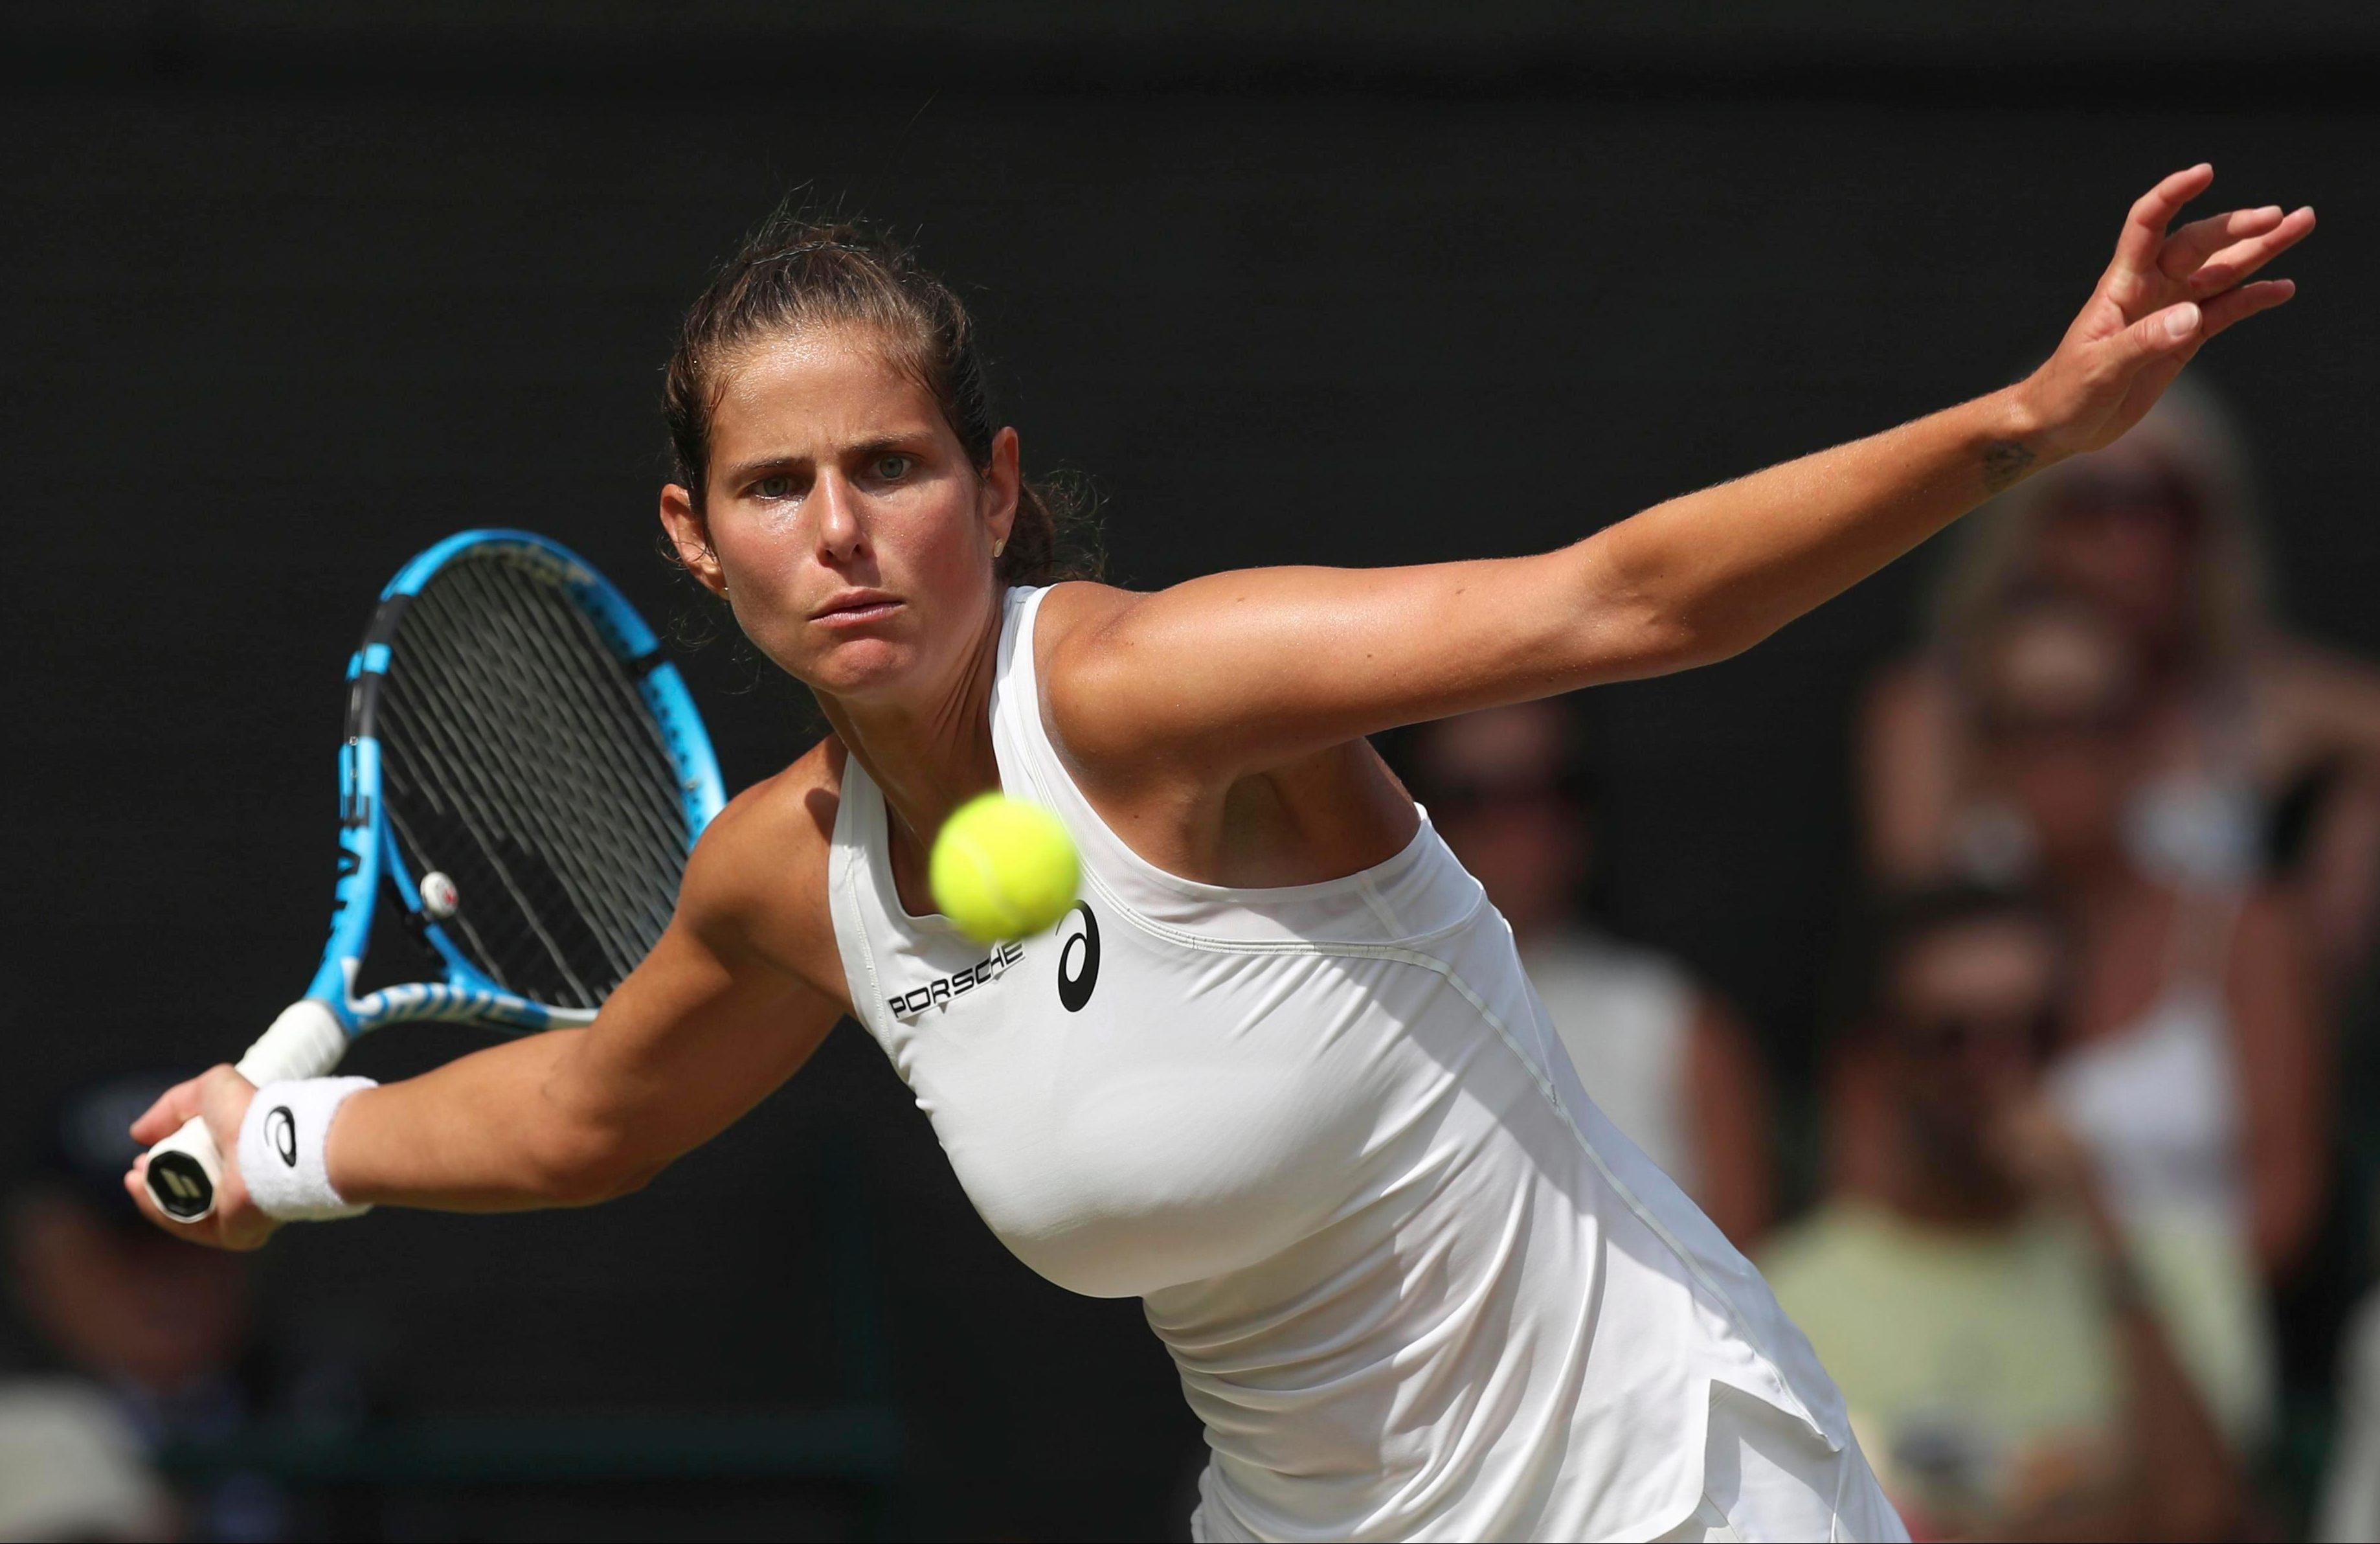 German Julia Goerges hads few answers to the power of Serena Williams on Centre Court at Wimbledon